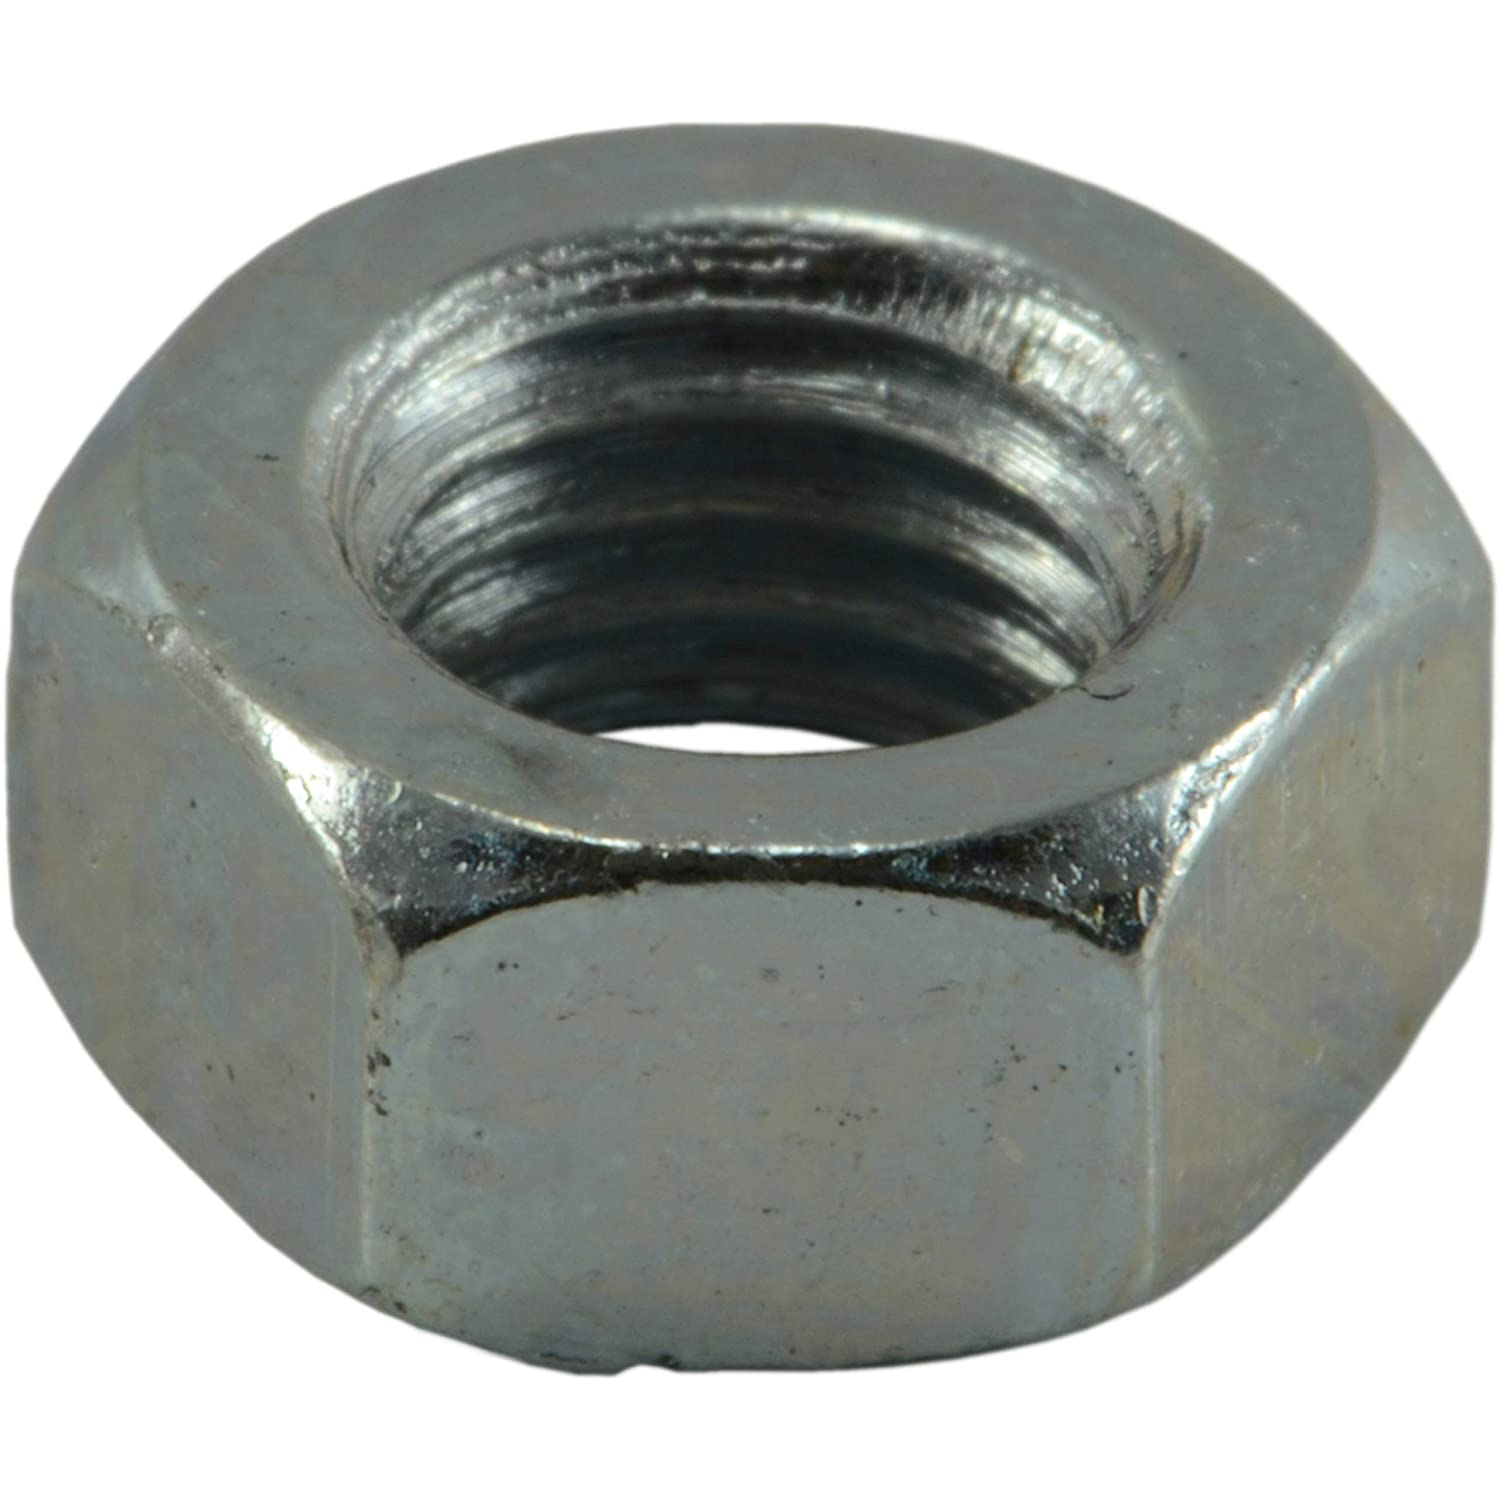 7mm-1.00 Hard-to-Find Fastener 014973277970 Finished Hex Nuts Piece-100